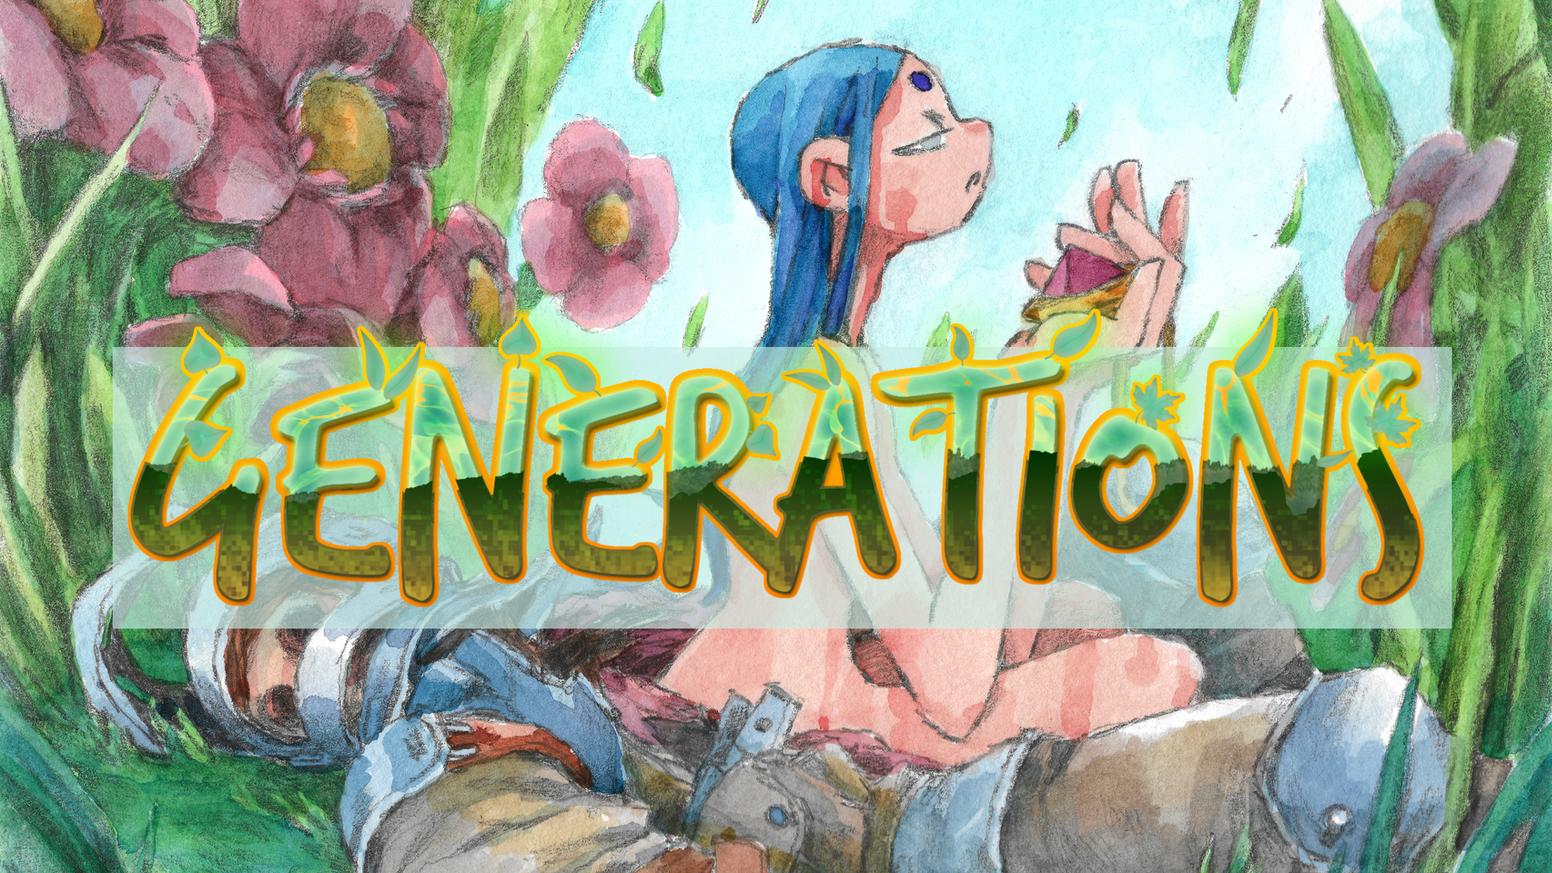 In 2017, backers supported this new game, and now it's live for sale! Generations is a roleplay focused game set on an alt-Earth where, when you die, your next generation is born from your corpse, keyed to one of 80 wild and fun elements.